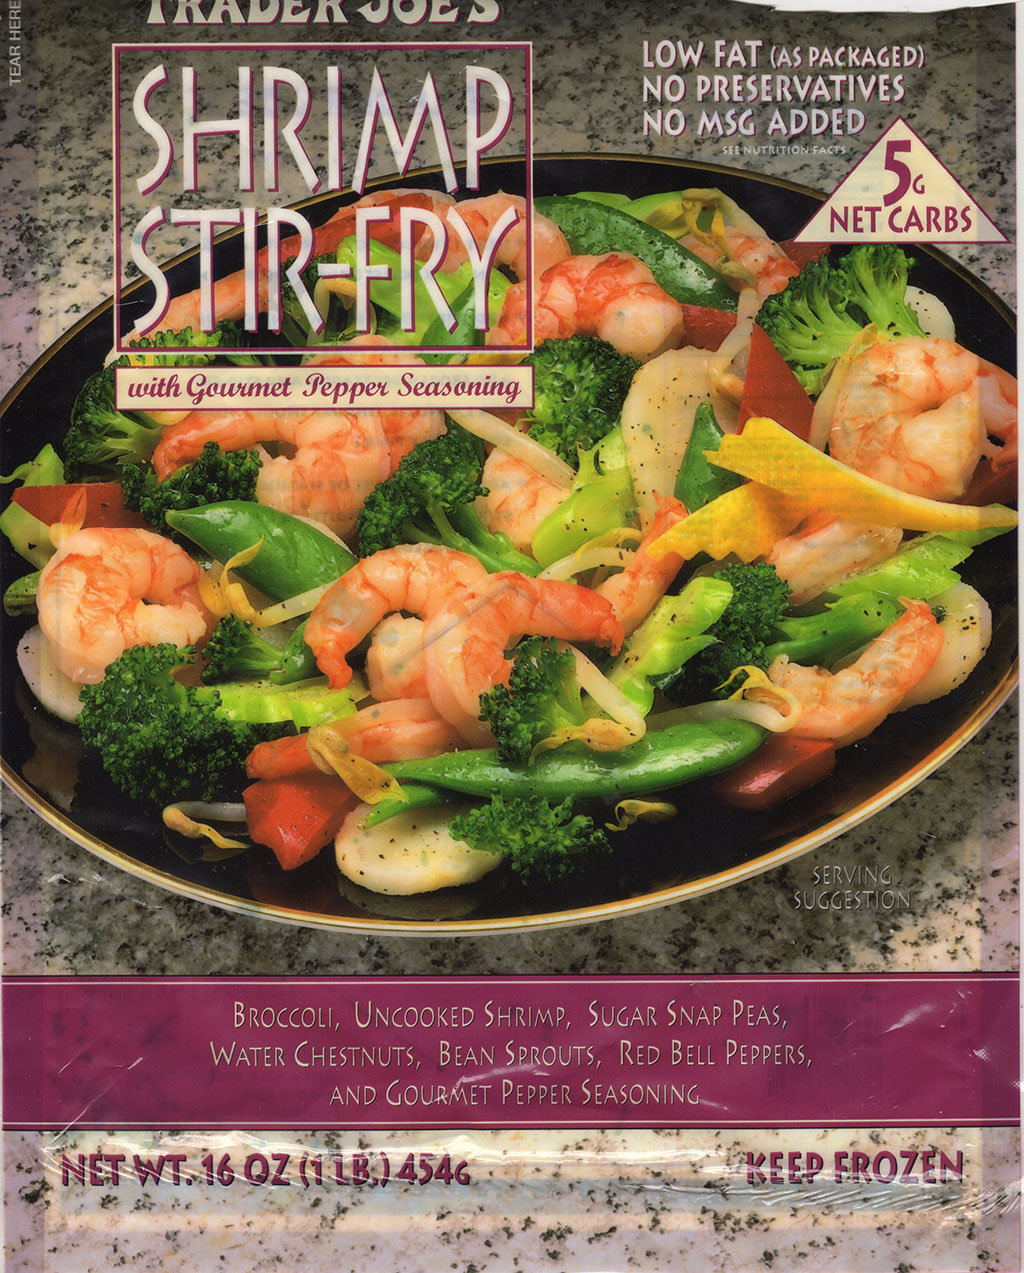 Trader Joe's Shrimp Stir Fry package front